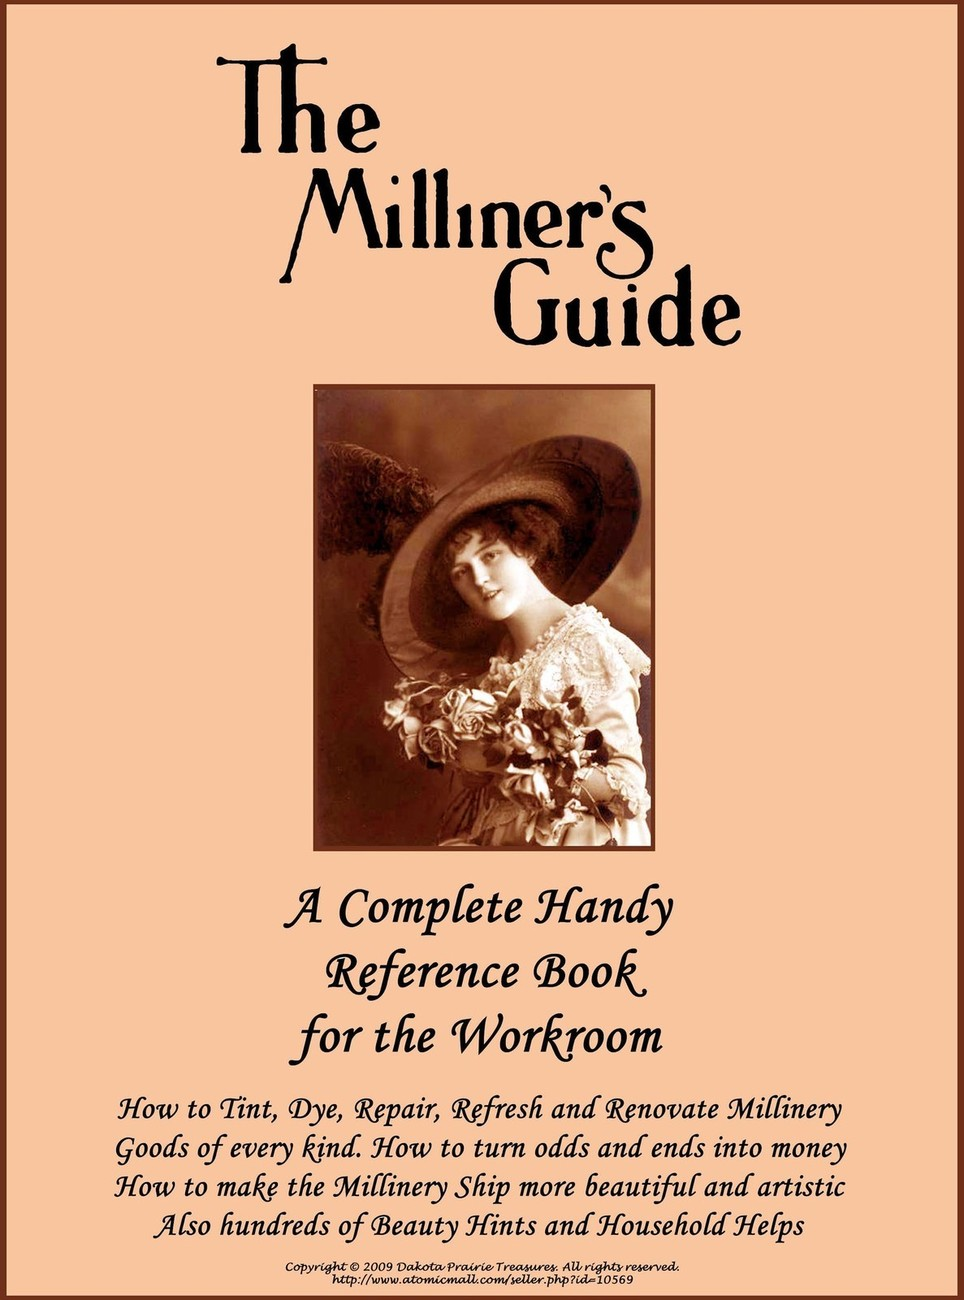 1917 Millinery Book Renovate Repair Hats DIY Titanic Milliner Guide Dye Feathers